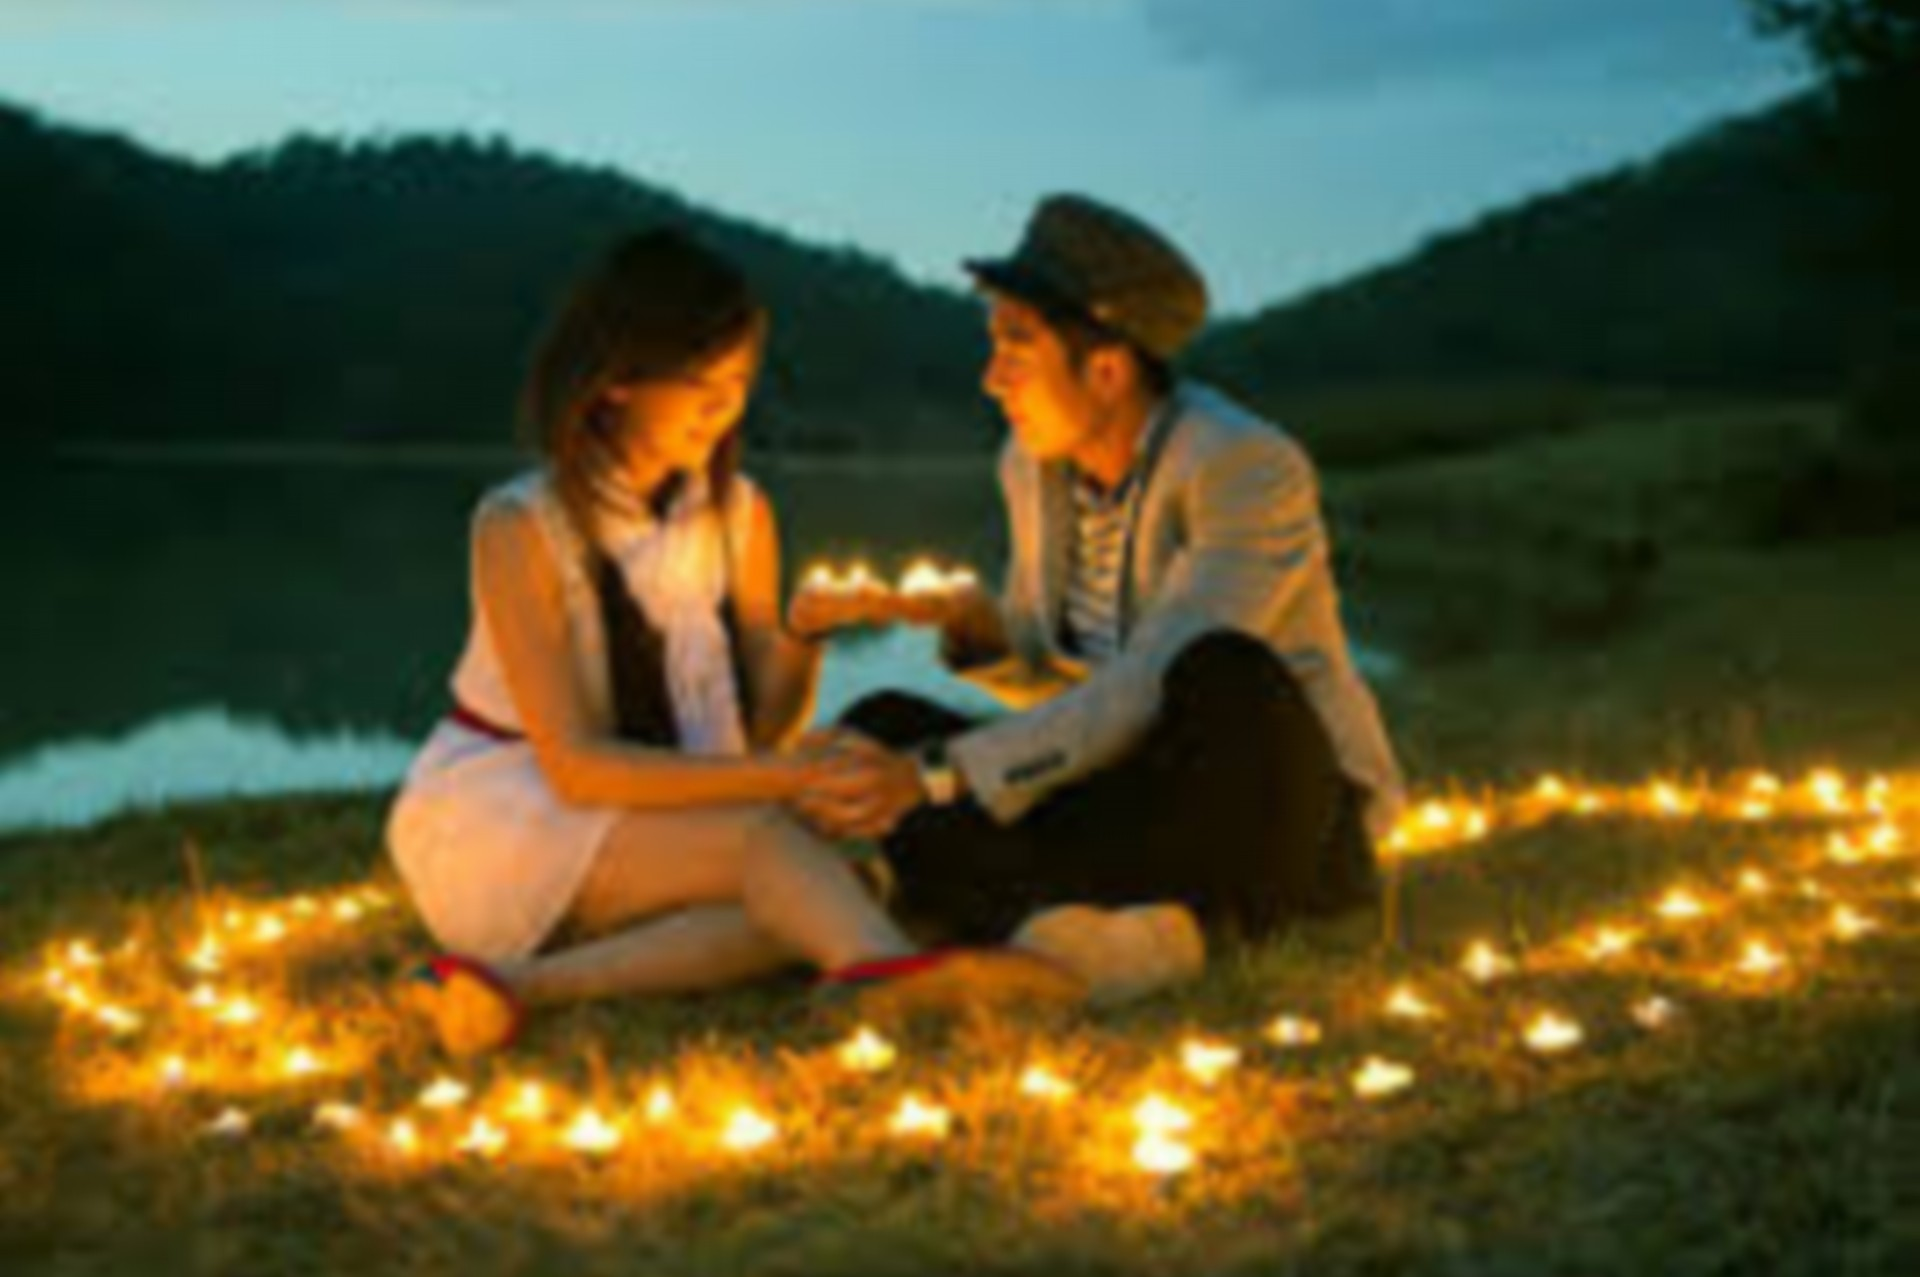 Love spells Durban | Will help you to bring back ex | Black